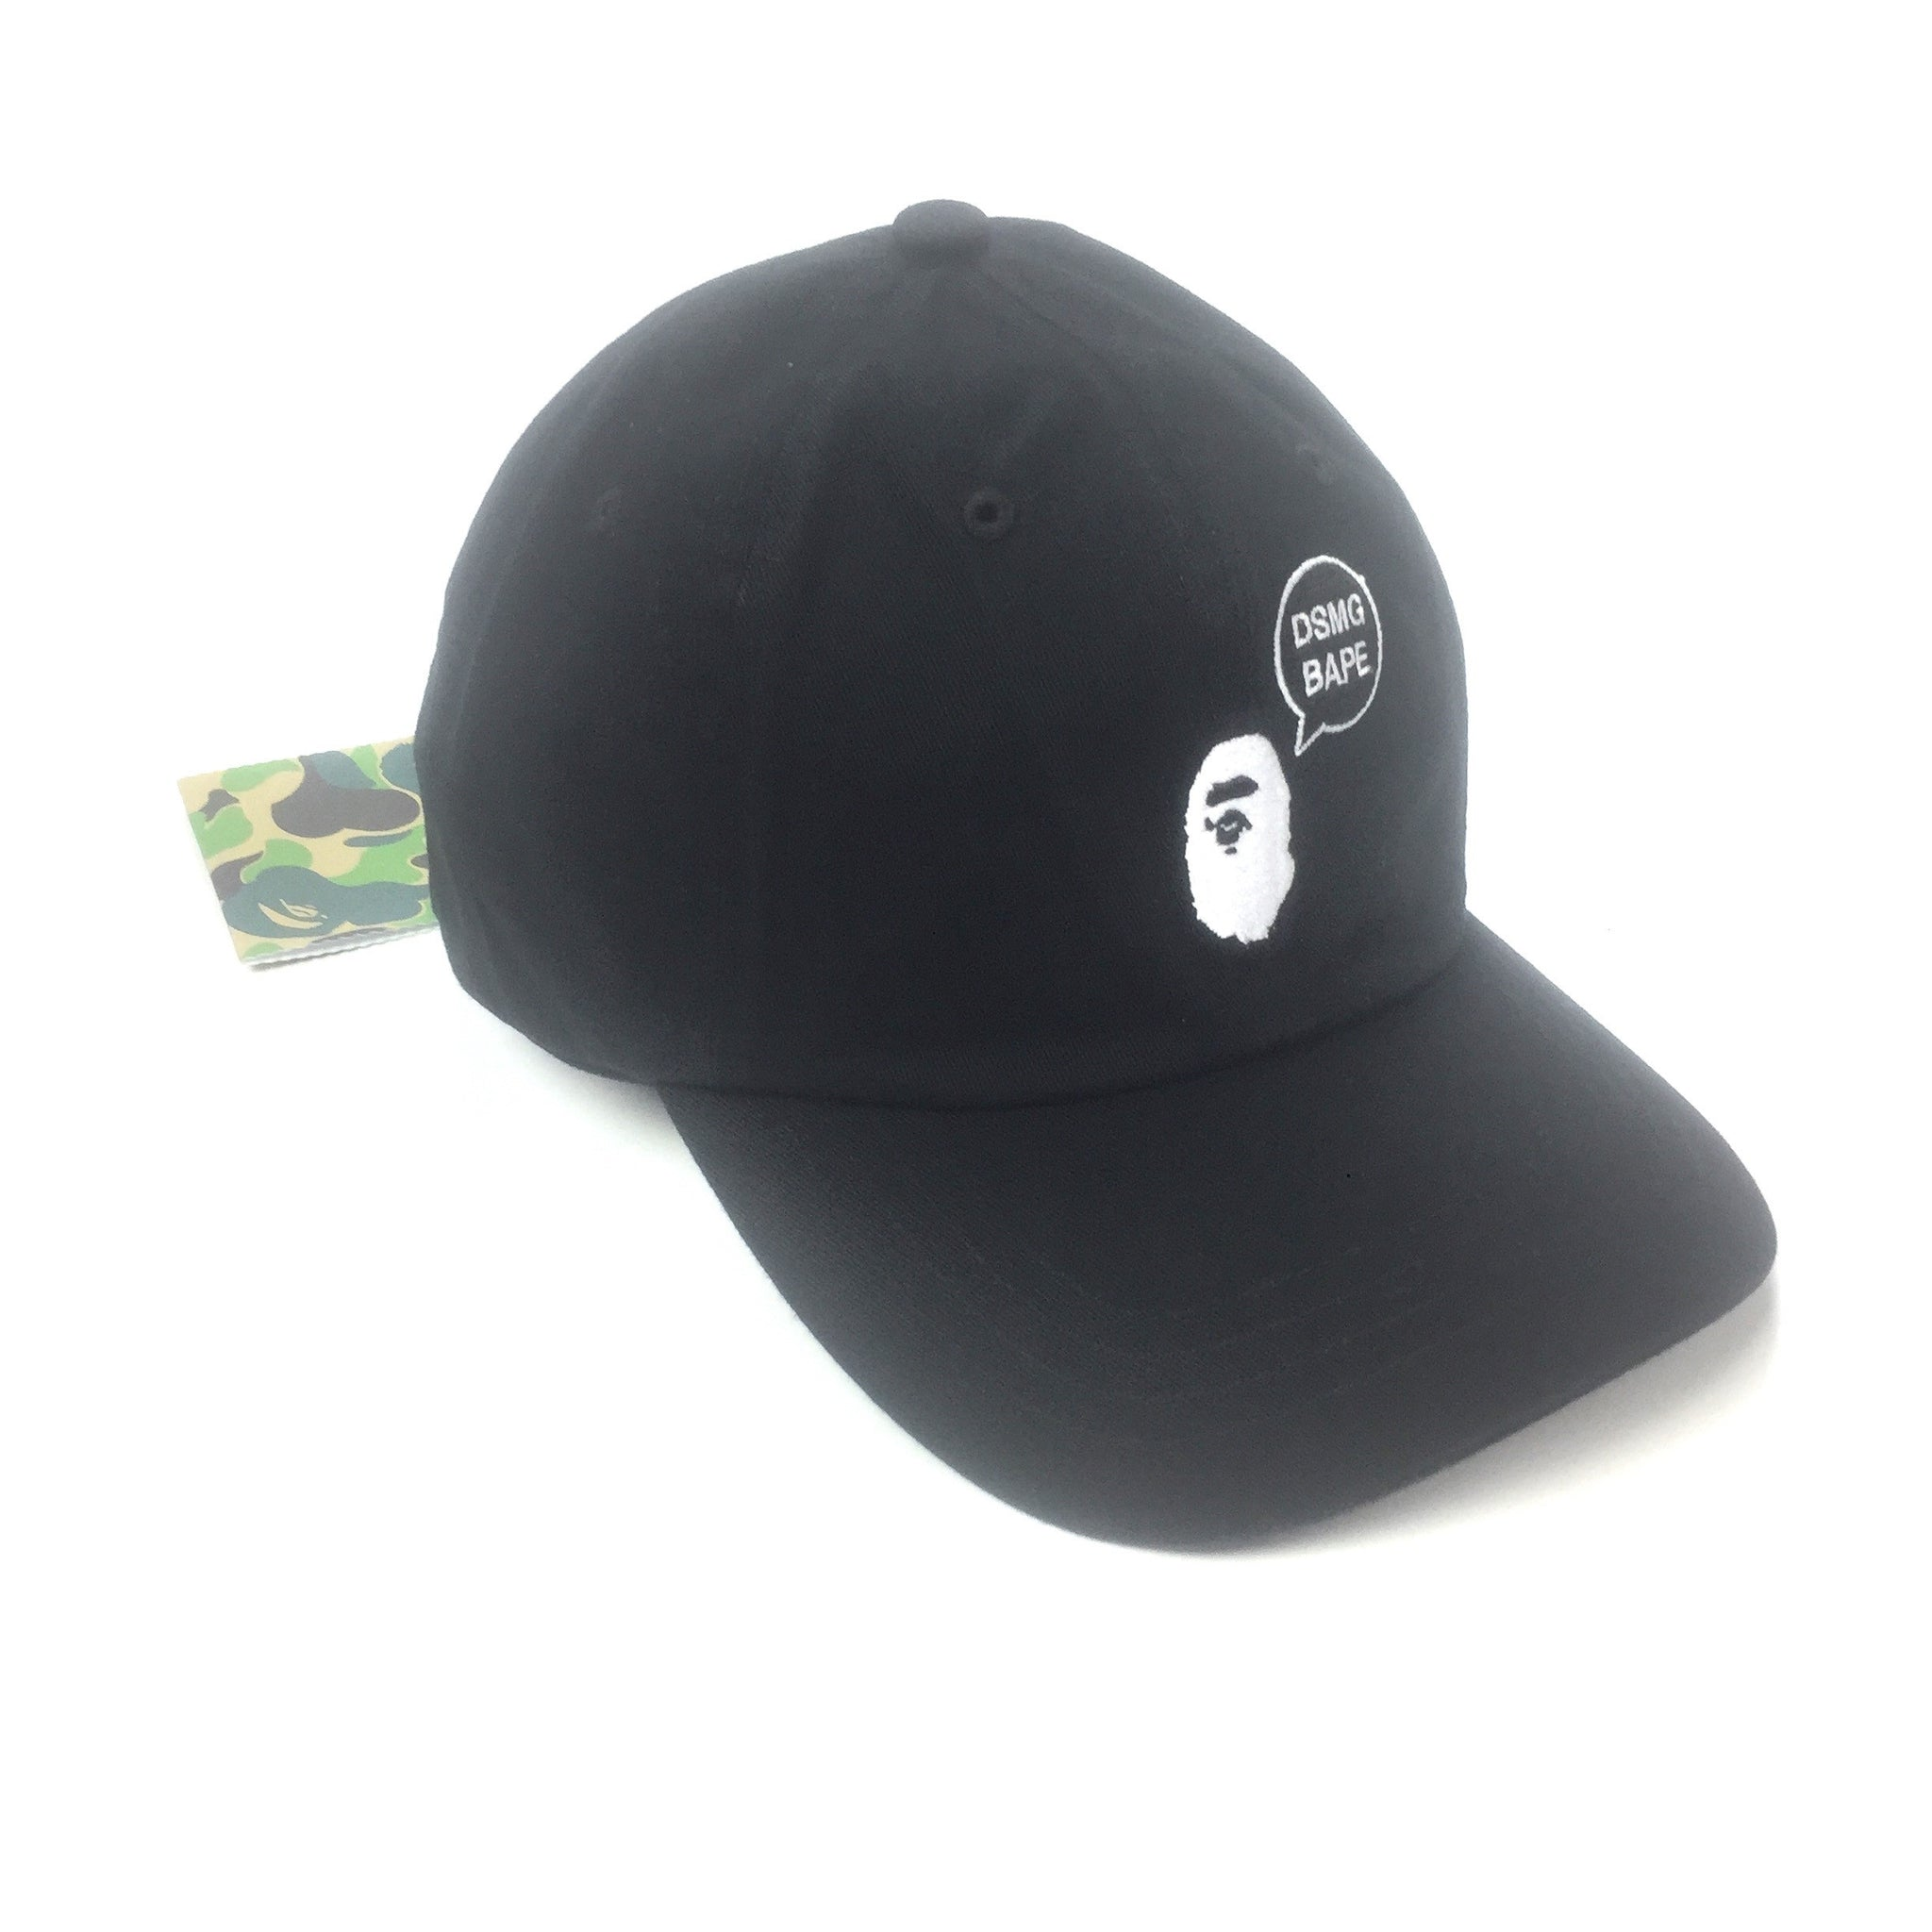 e7e05f834 A Bathing Ape x DSM Ginza - Black Bape DSMG Logo Embroidered Dad Hat ...